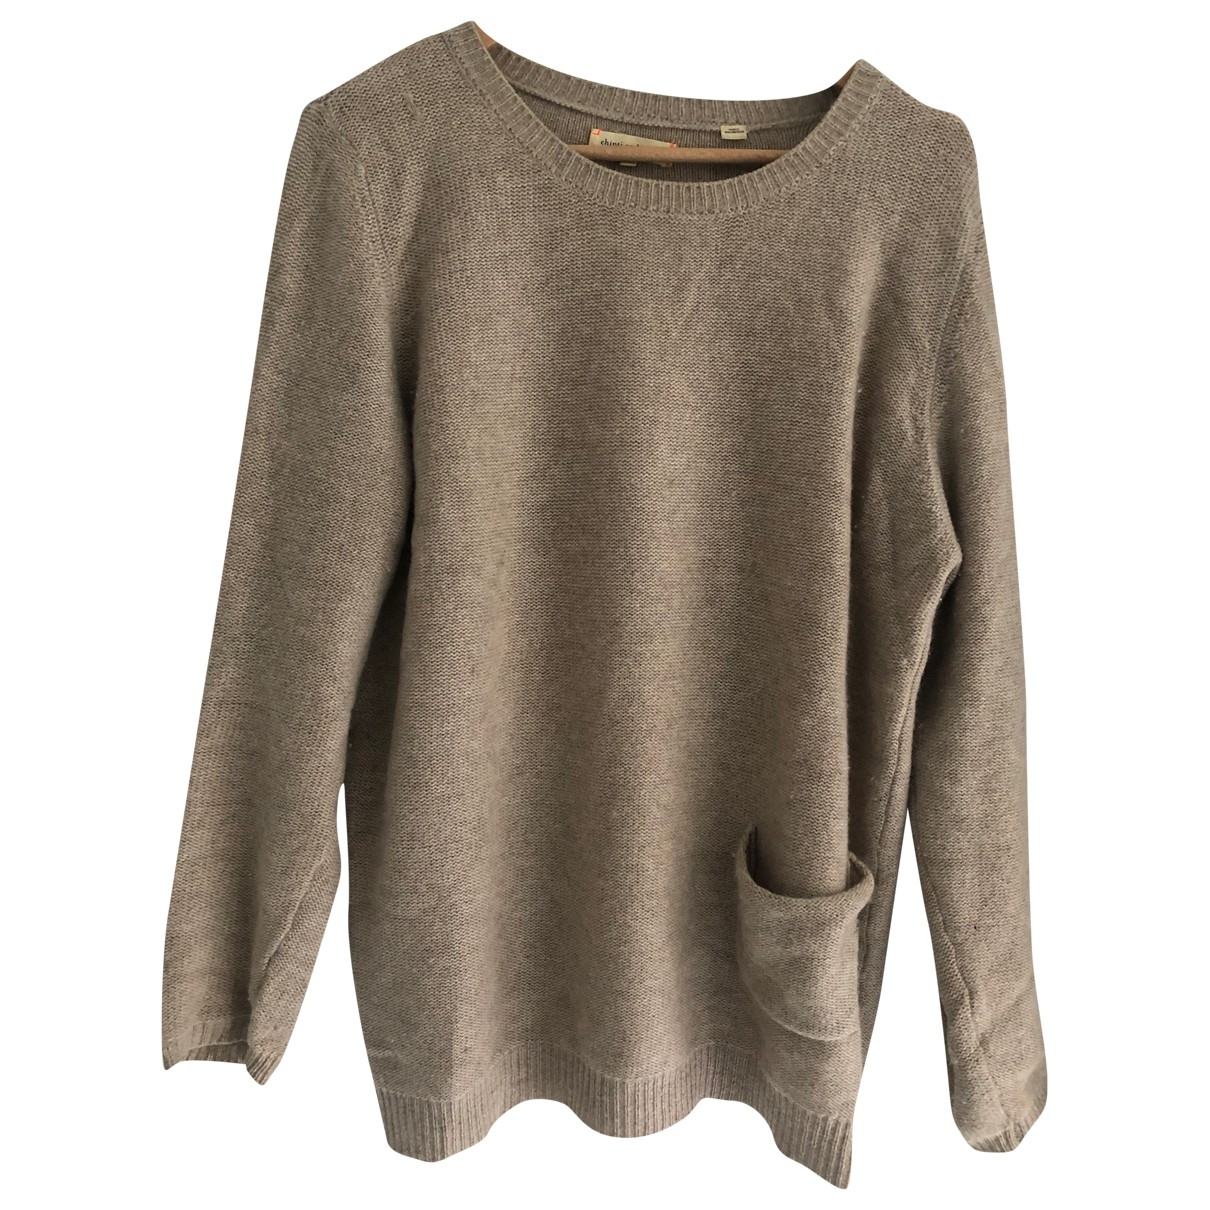 Chinti & Parker \N Ecru Cashmere Knitwear for Women S International